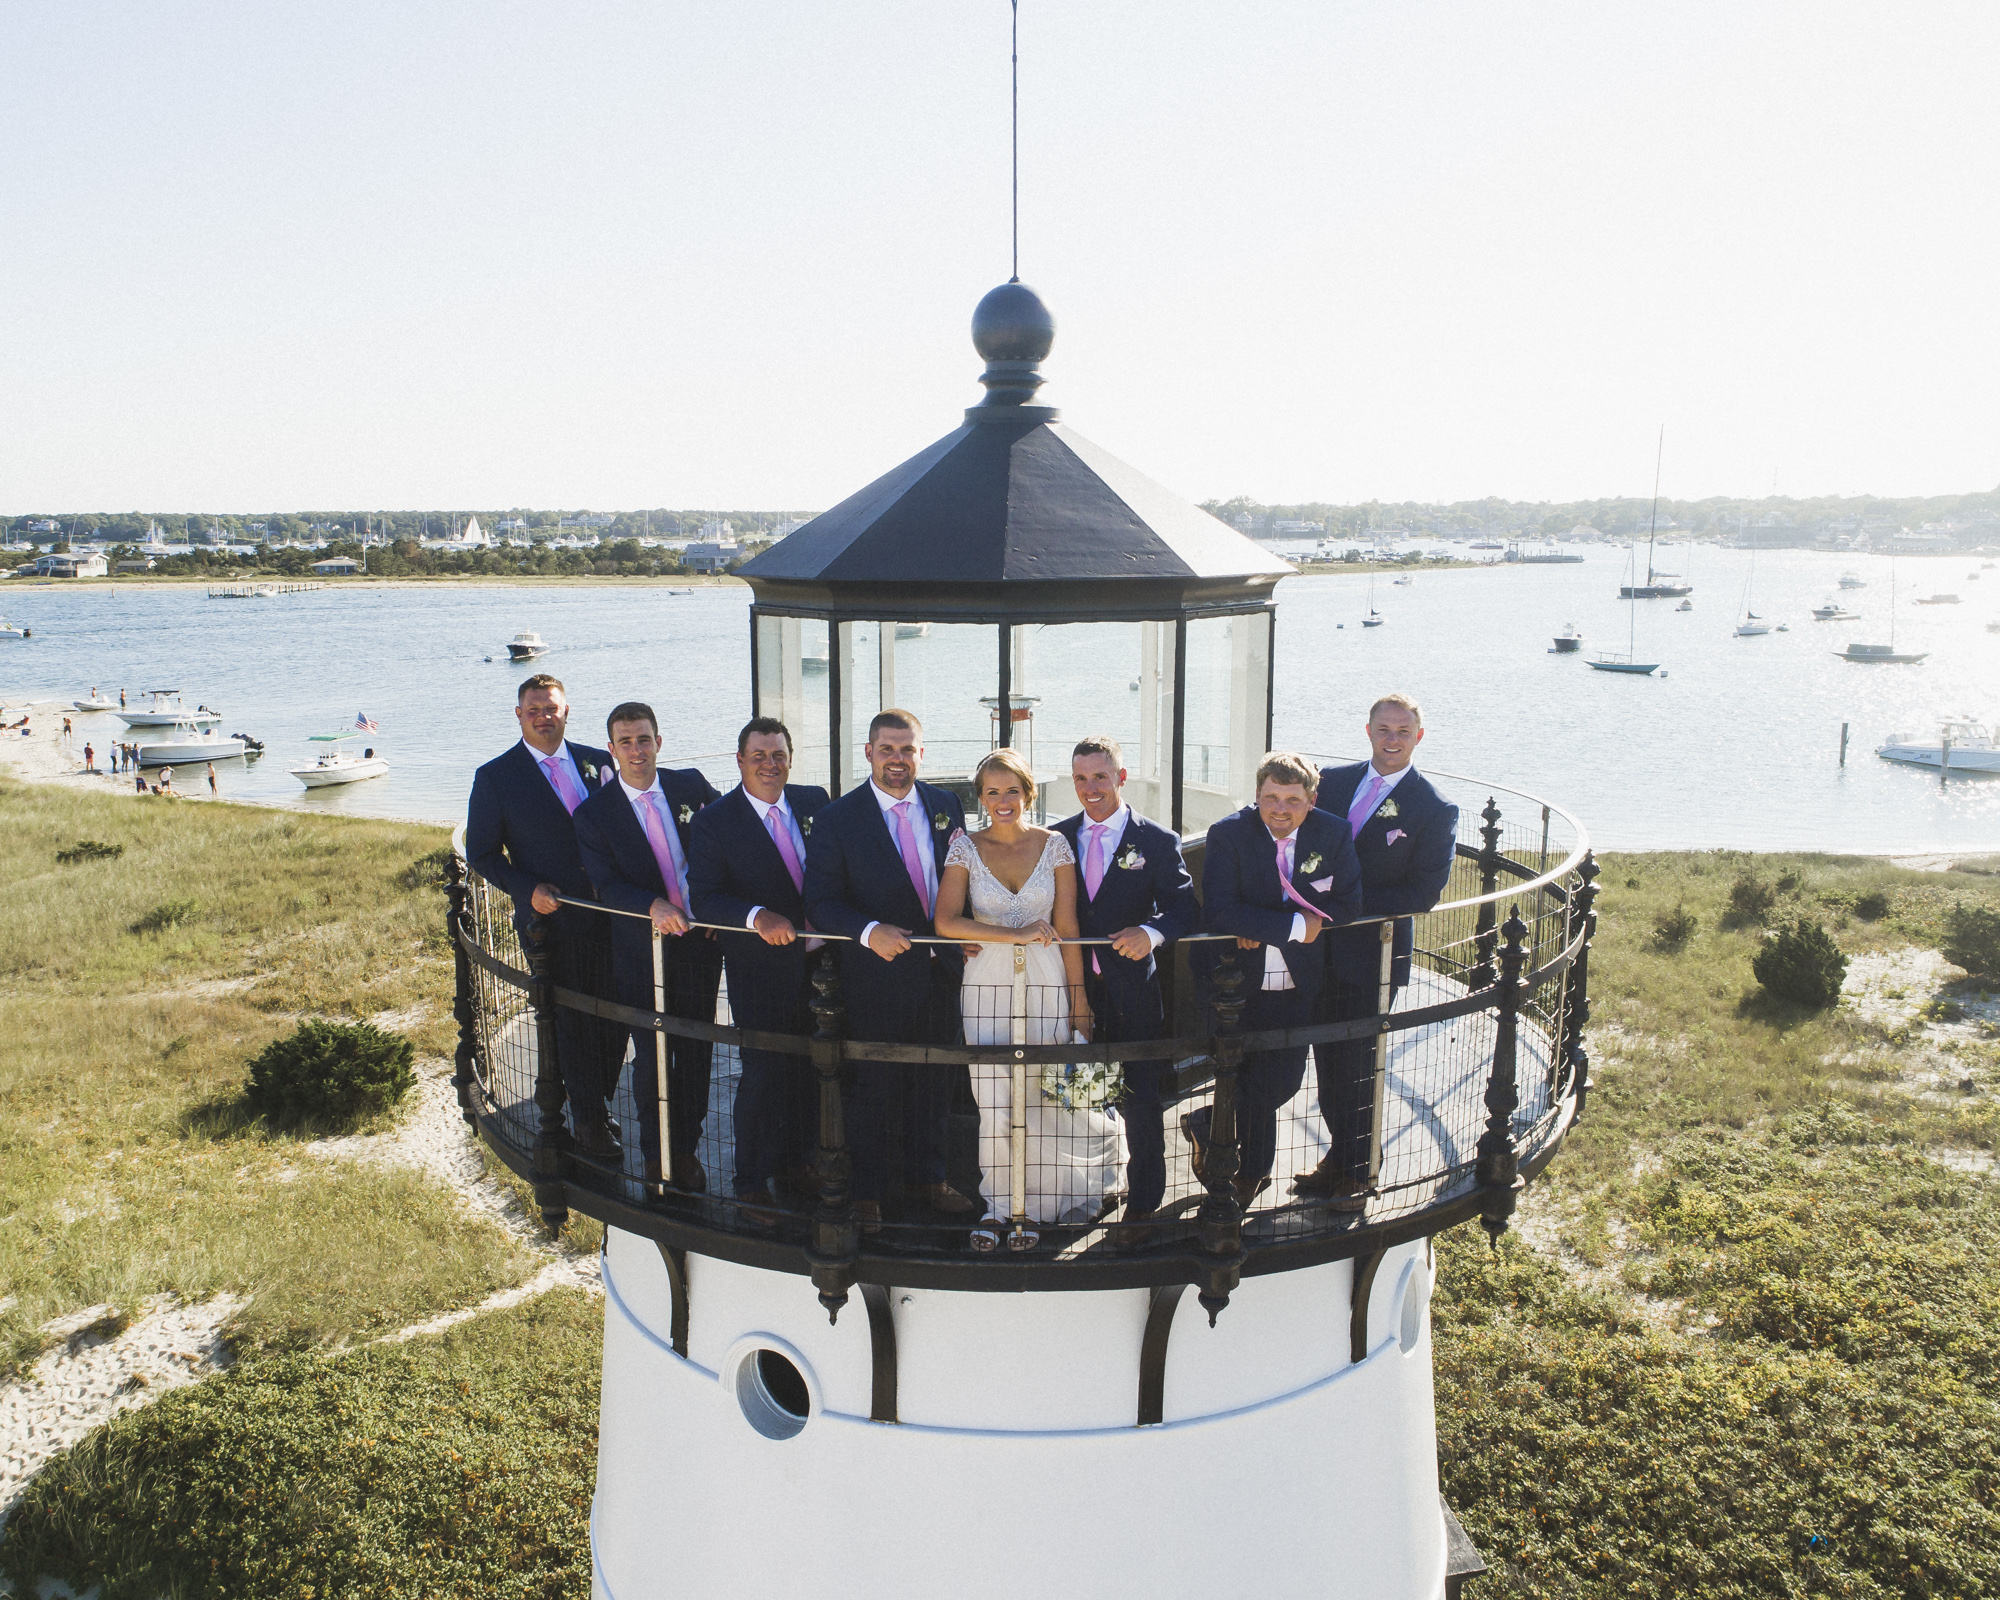 A drone photo of a wedding party on top of the Edgartown Lighthouse photo by David Welch Photography